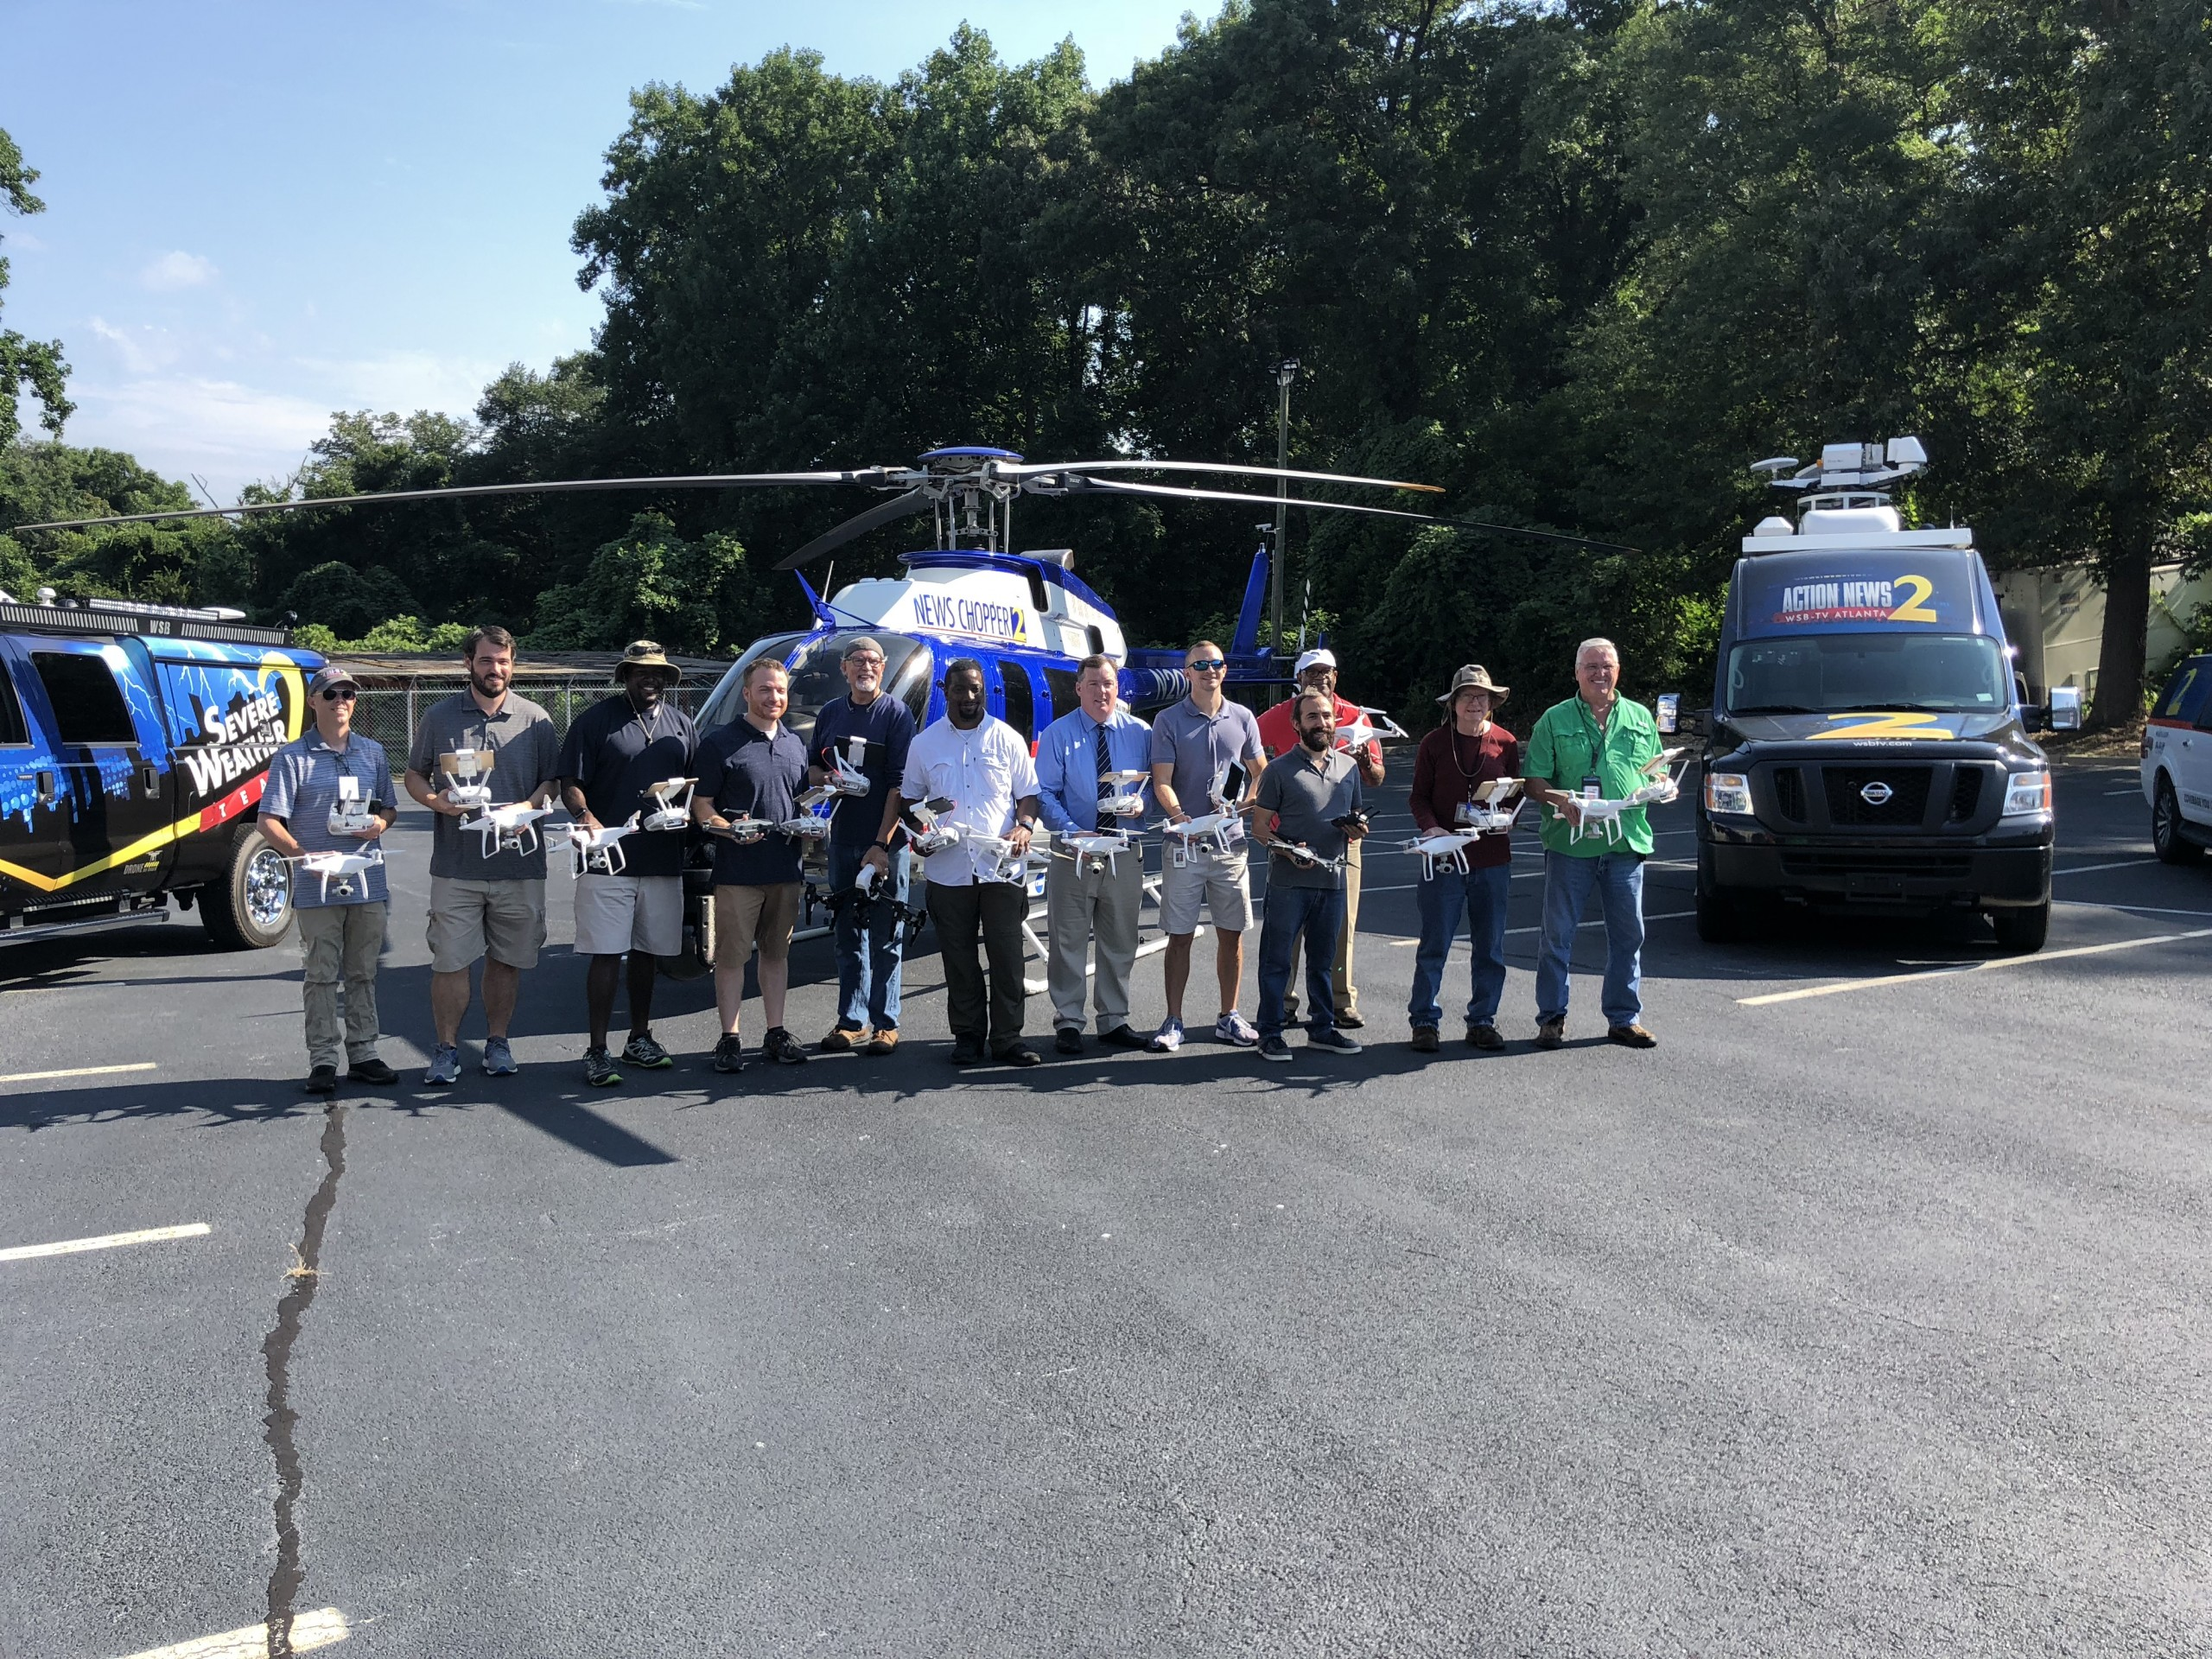 WSB-TV in Atlanta drones